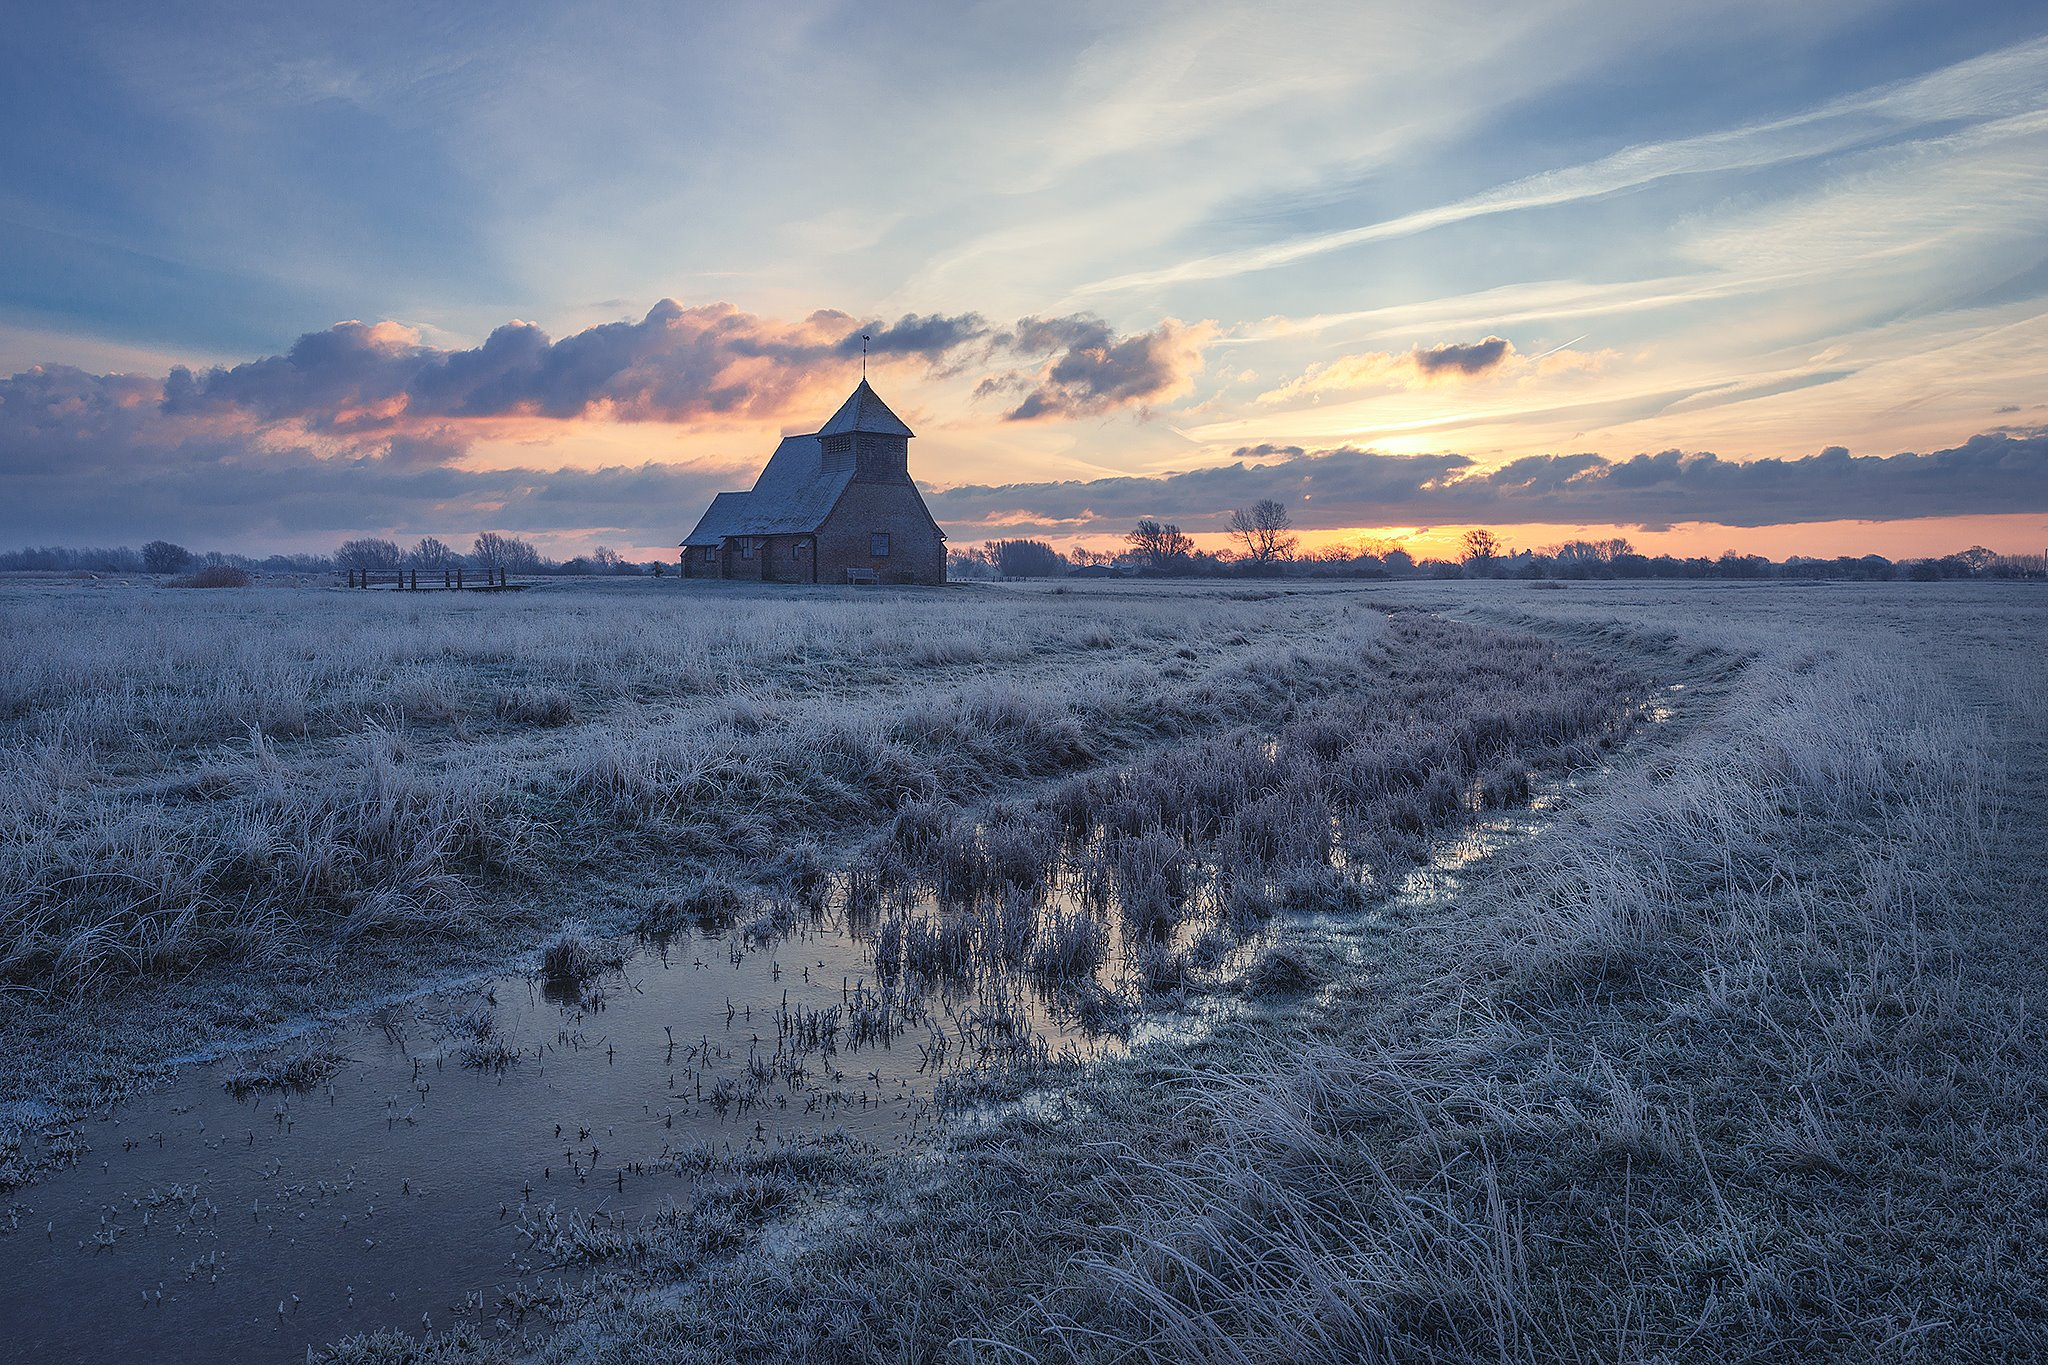 'Fairfield Frost' - the church of St Thomas à Becket in Romney Marsh